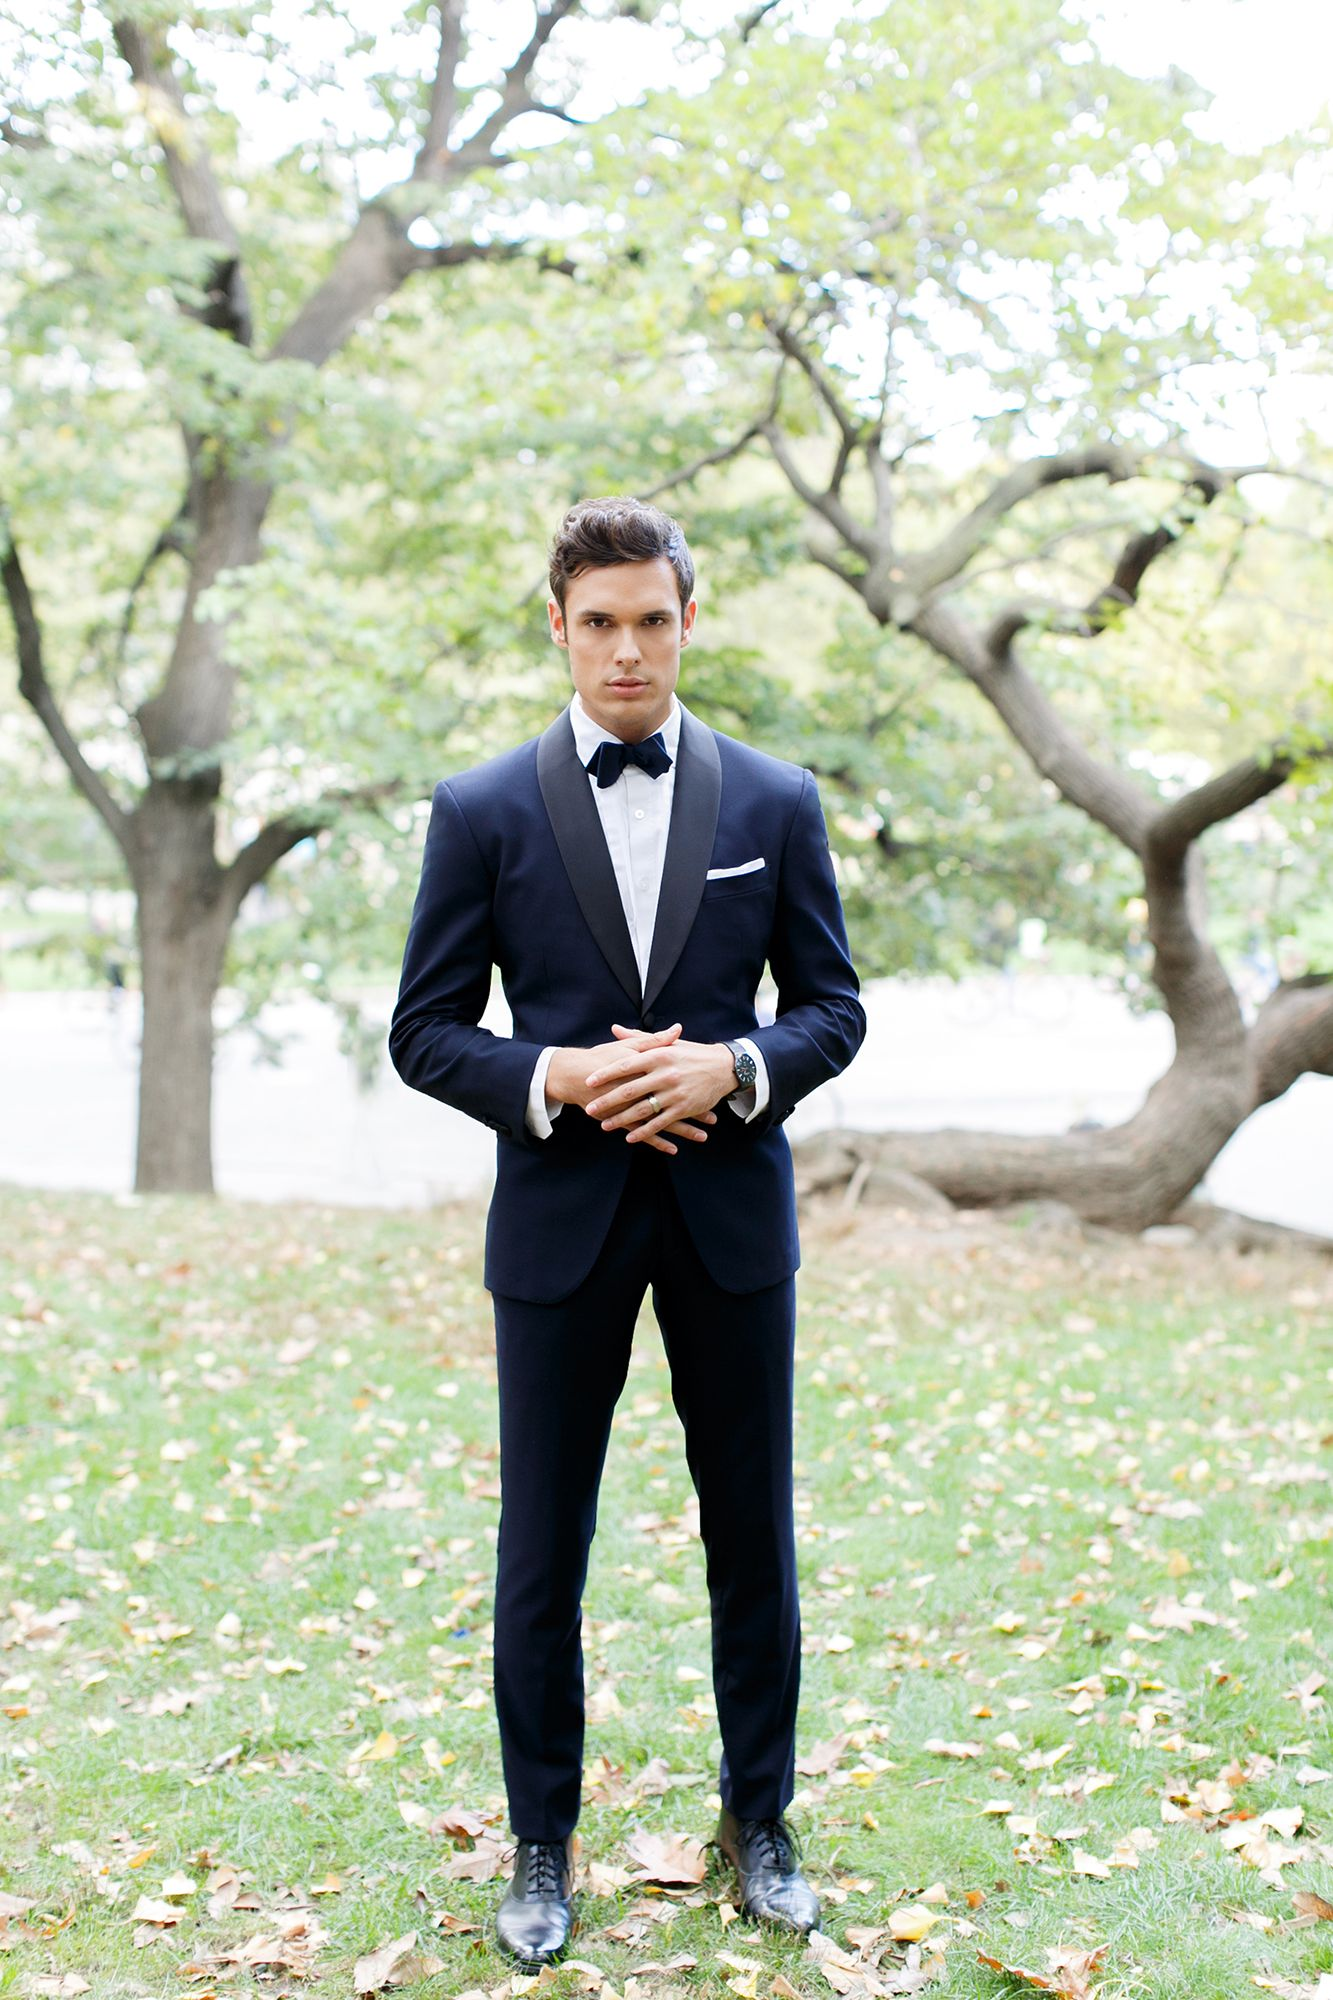 Make Room For The Groom A Stylist S Guide To Wedding Fashion